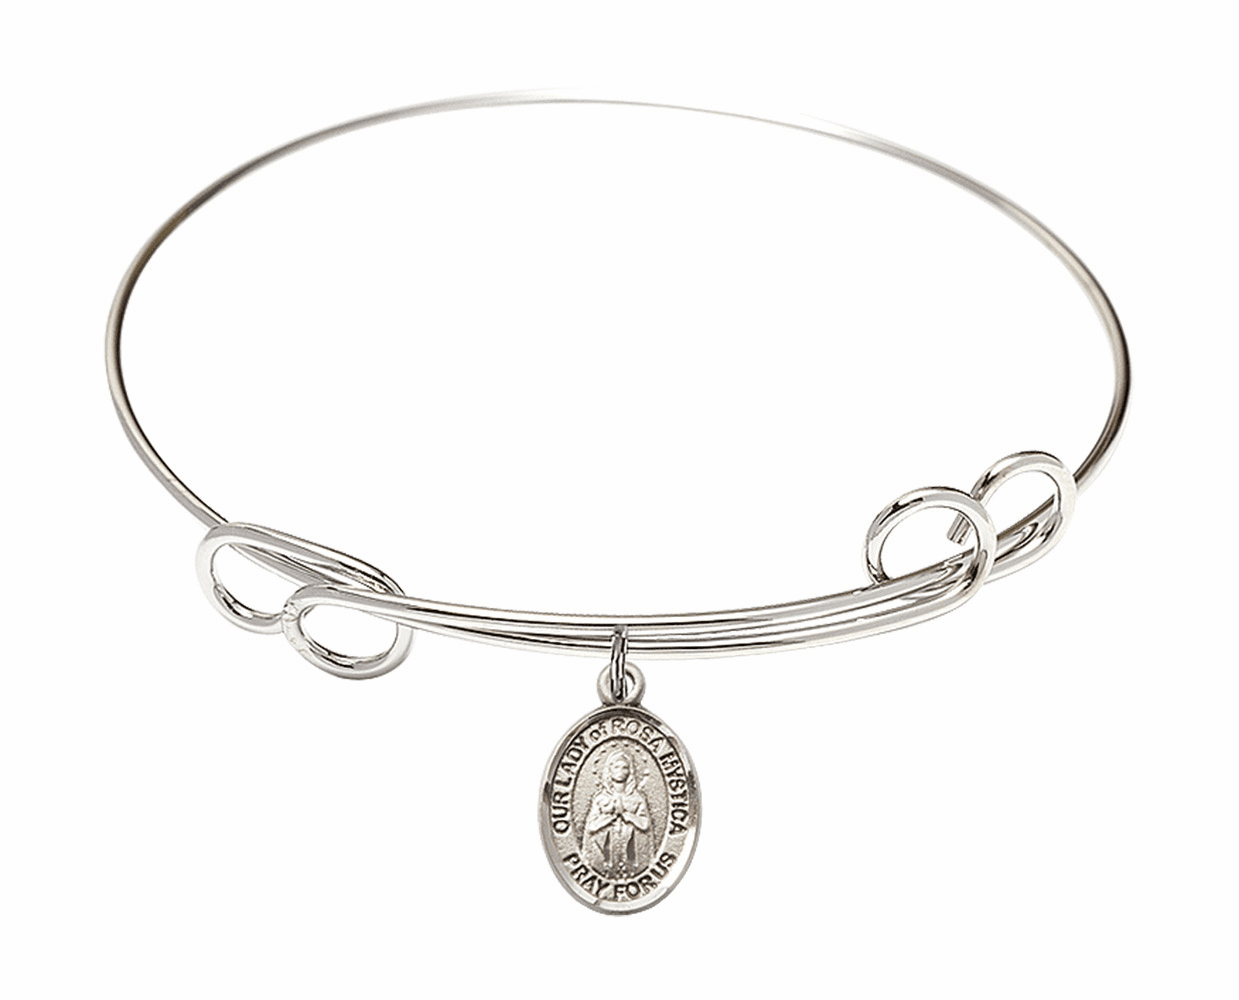 Round Loop Our Lady of Rosa Mystica Bangle Charm Bracelet by Bliss